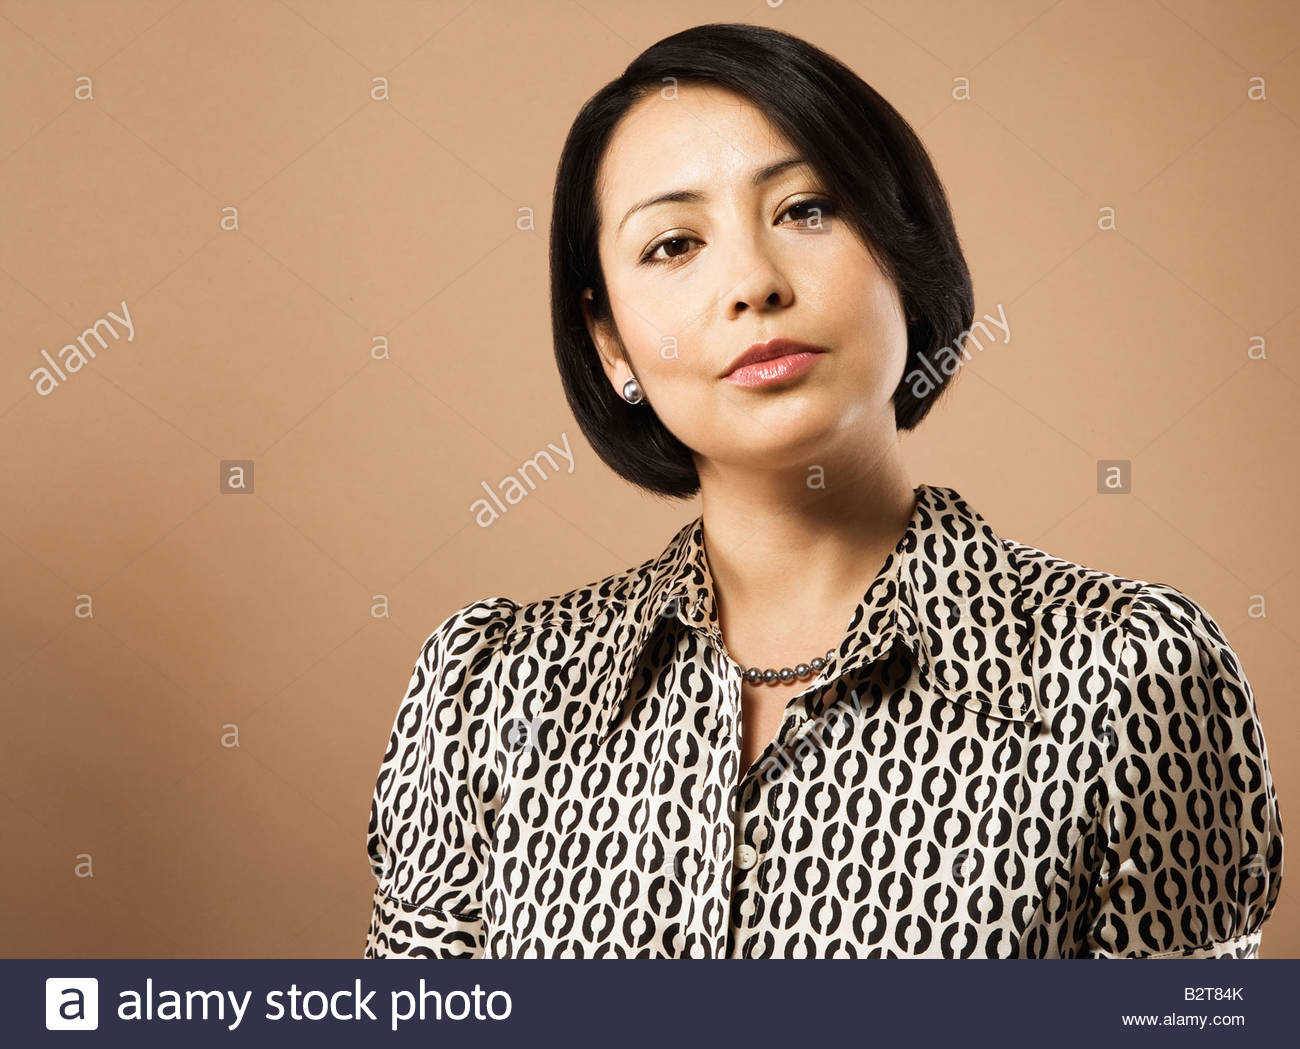 Businesswoman with serious expression Photo Stock